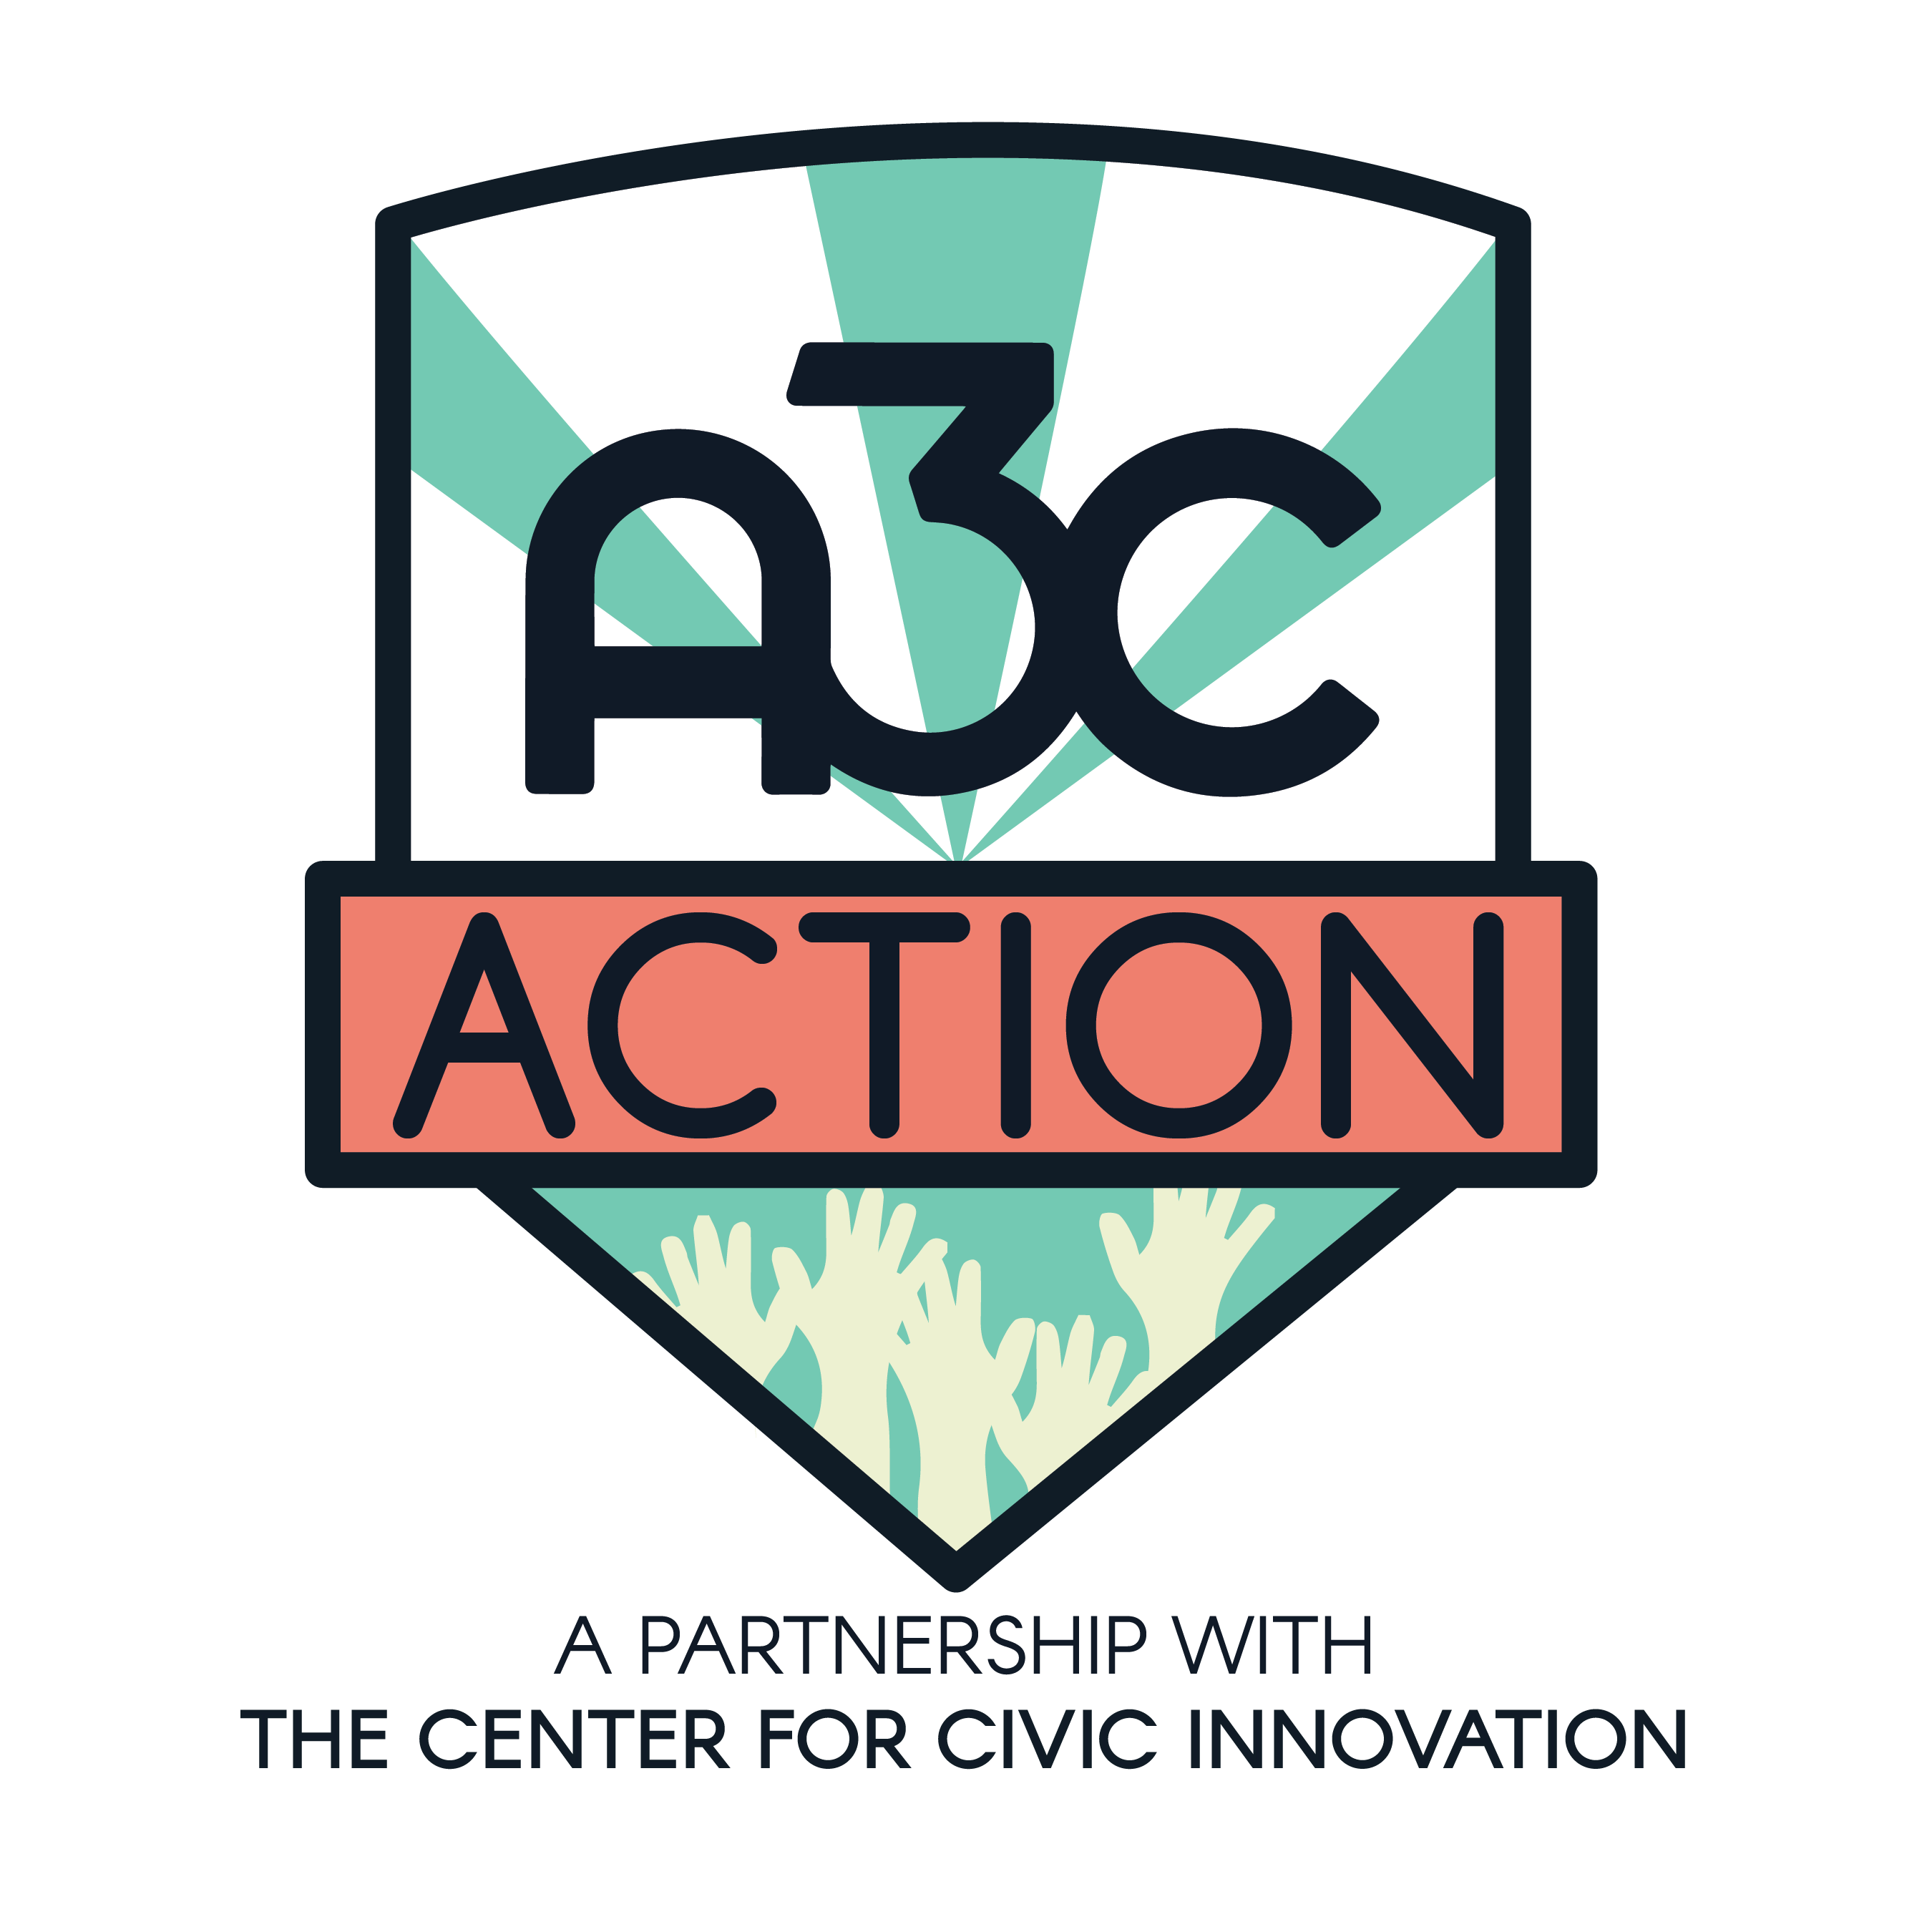 A3C_Action